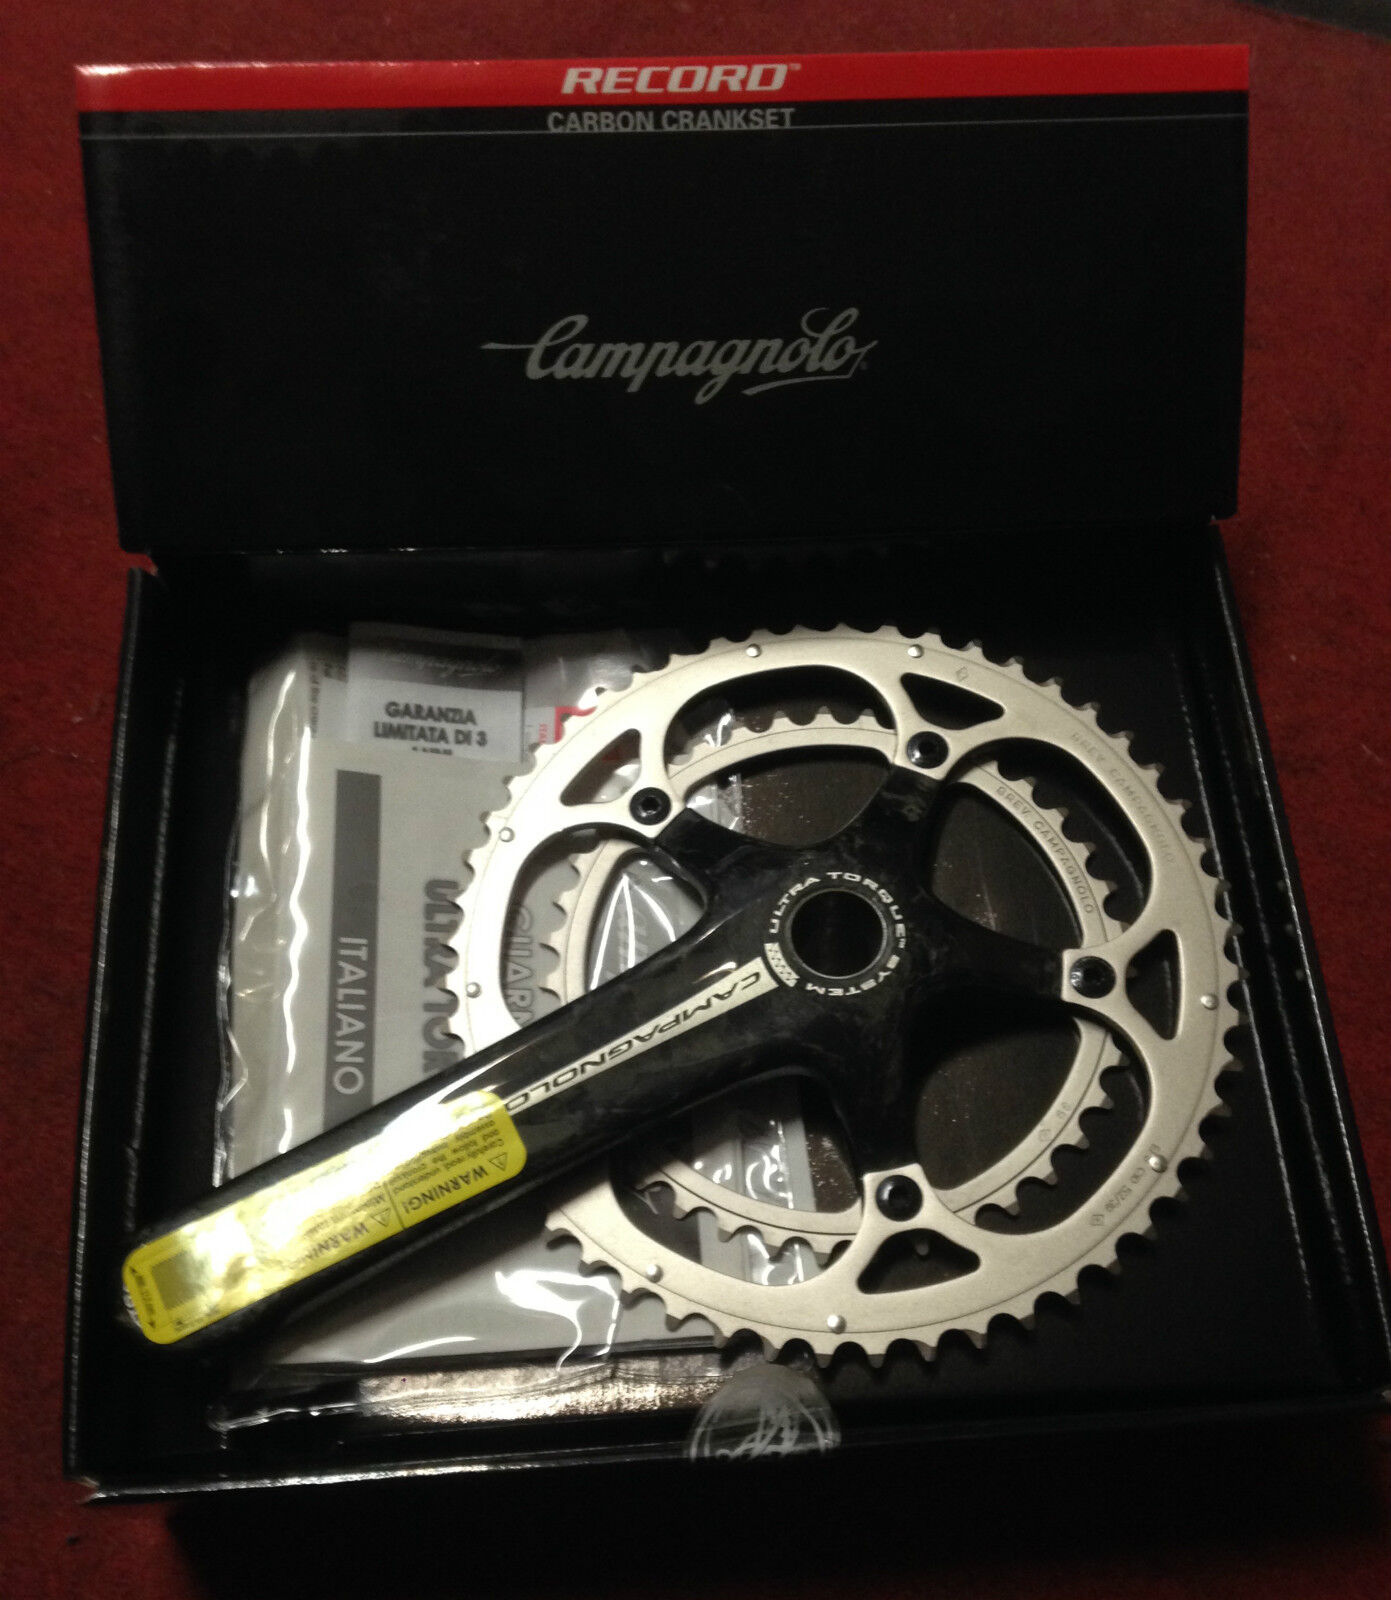 Crankset Campagnolo Record carbon bicicleta 172.5 39-52 10 s made in